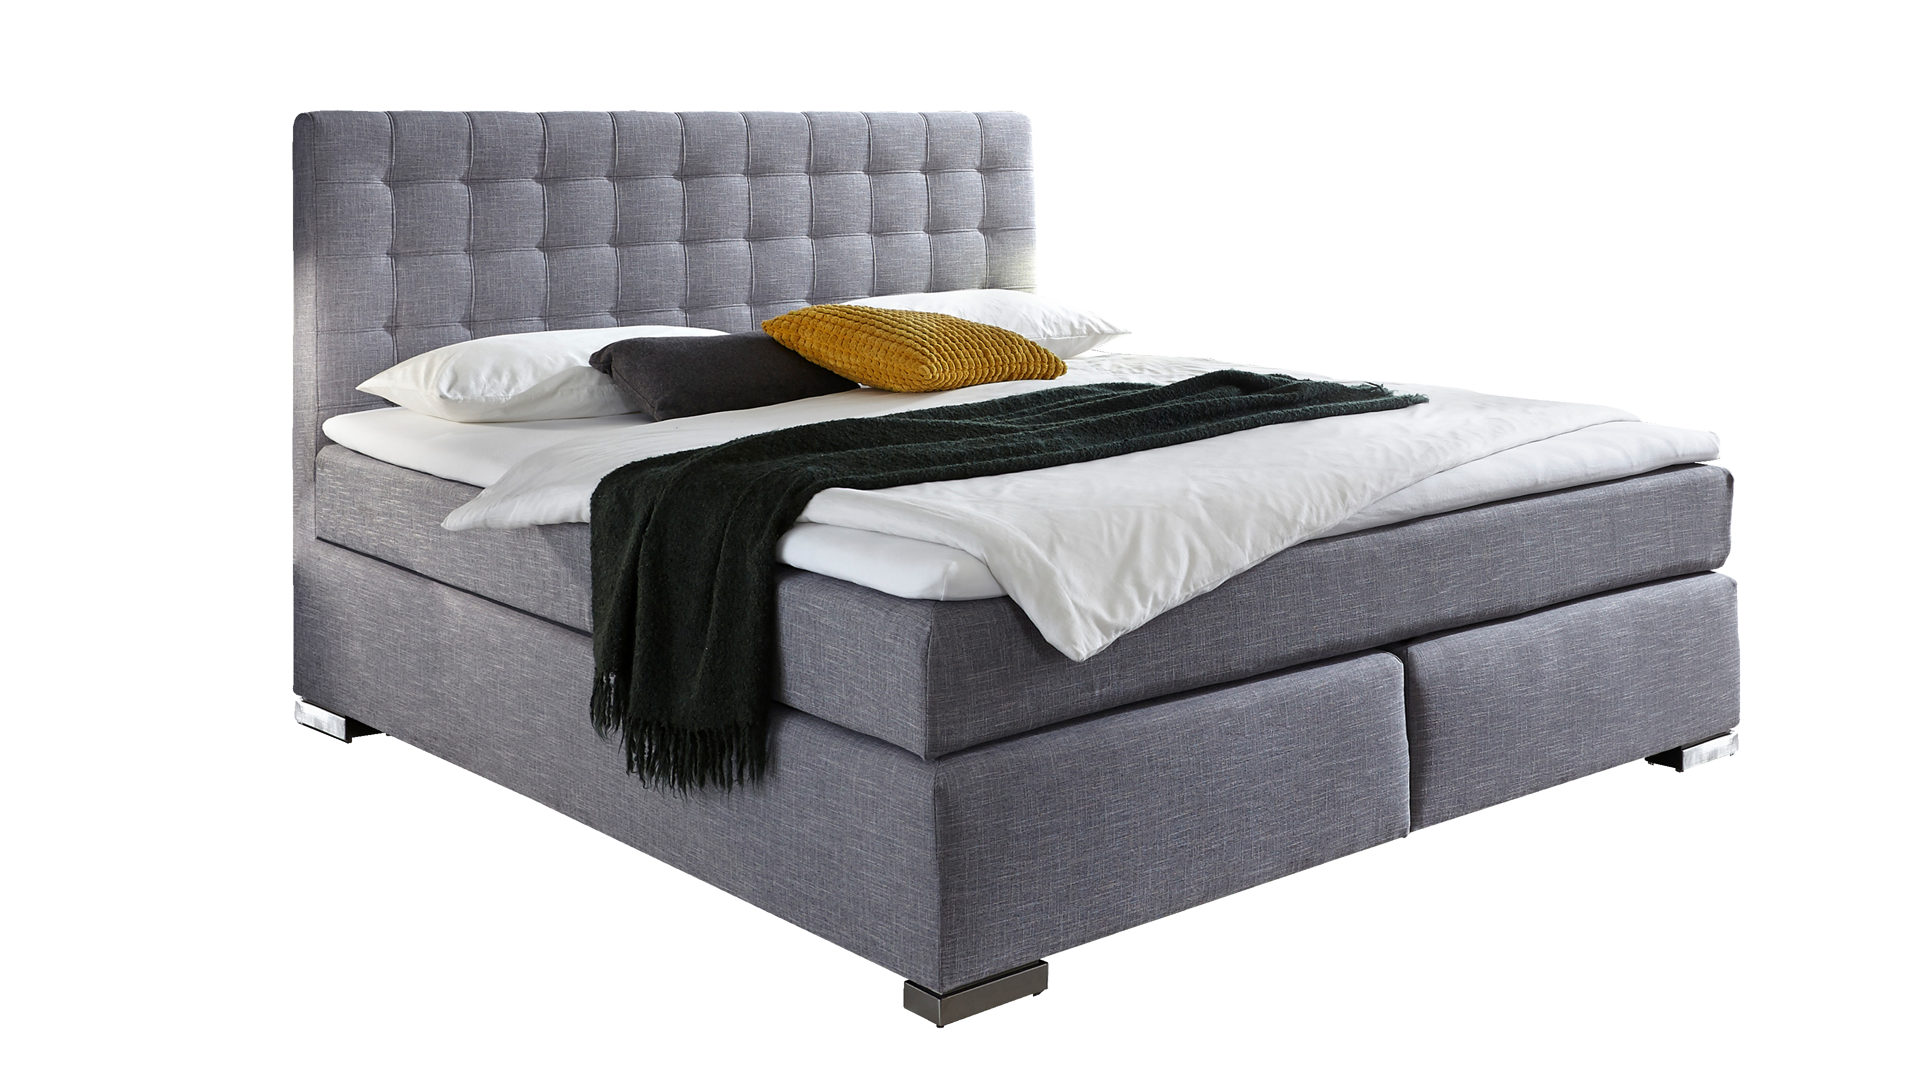 Boxspringbett Meisemobel Aus Stoff In Grau PARTNERRING COLLECTION Mit Federkern Grauer Stoffbezug Coulture